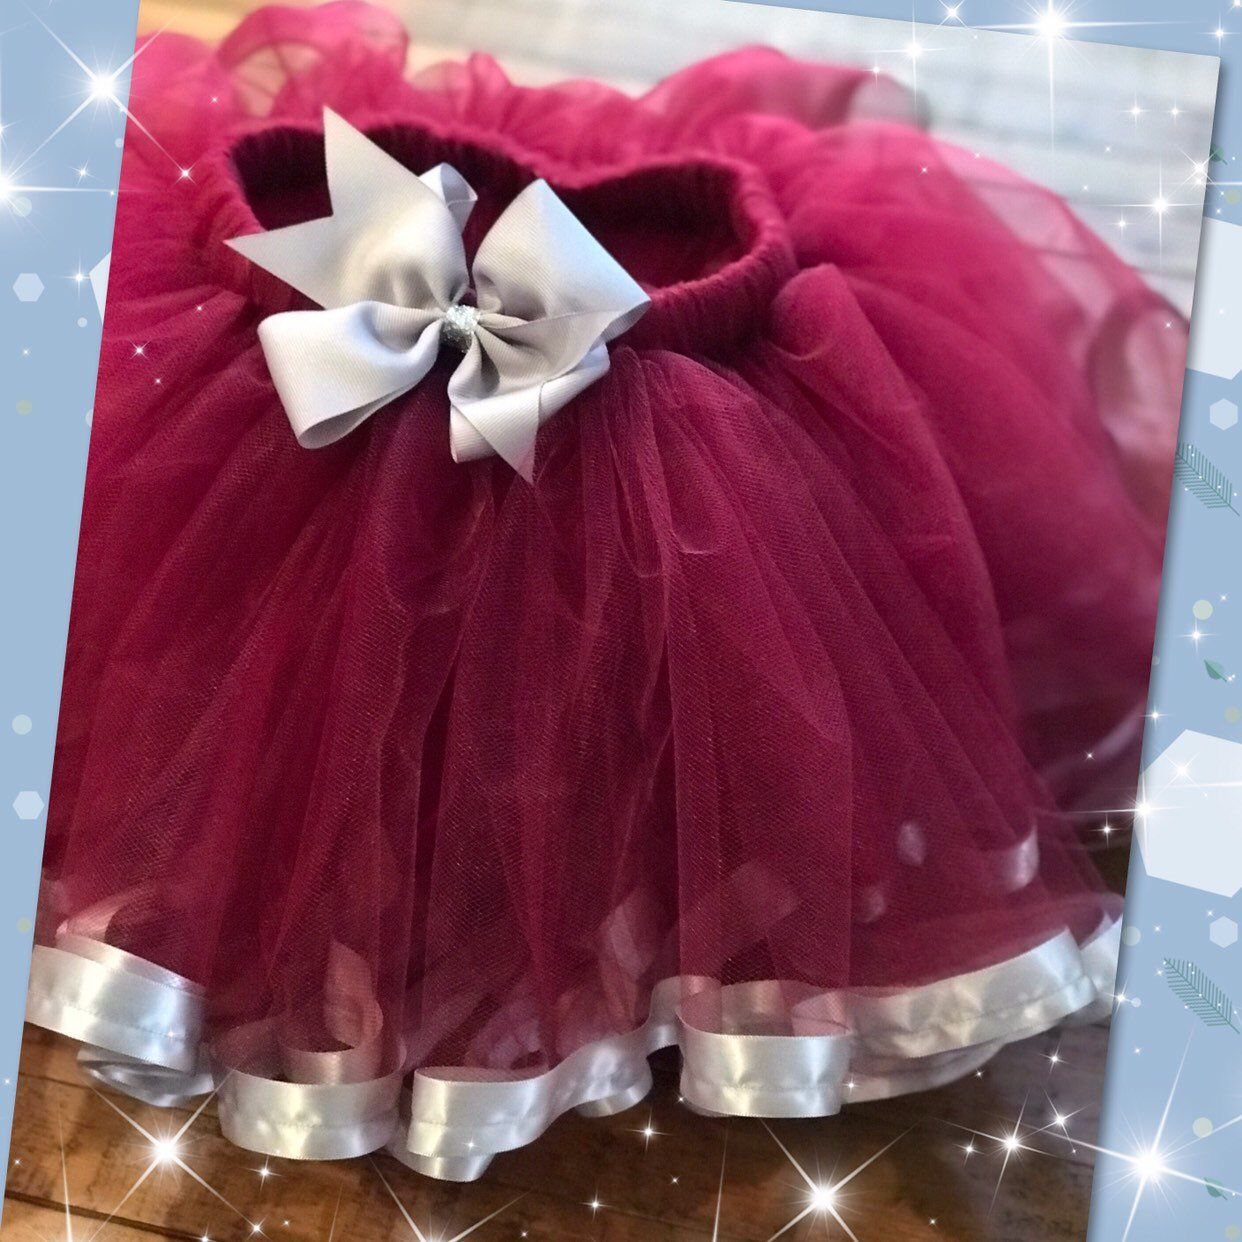 4e43d94abc Excited to share this item from my #etsy shop: Ballerina Tutu Skirt/ Burgundy  Tutu Skirt/Flower girl Tutu/ Burgundy and Silver Tutu/ Birthday Tutu Skirt/  ...